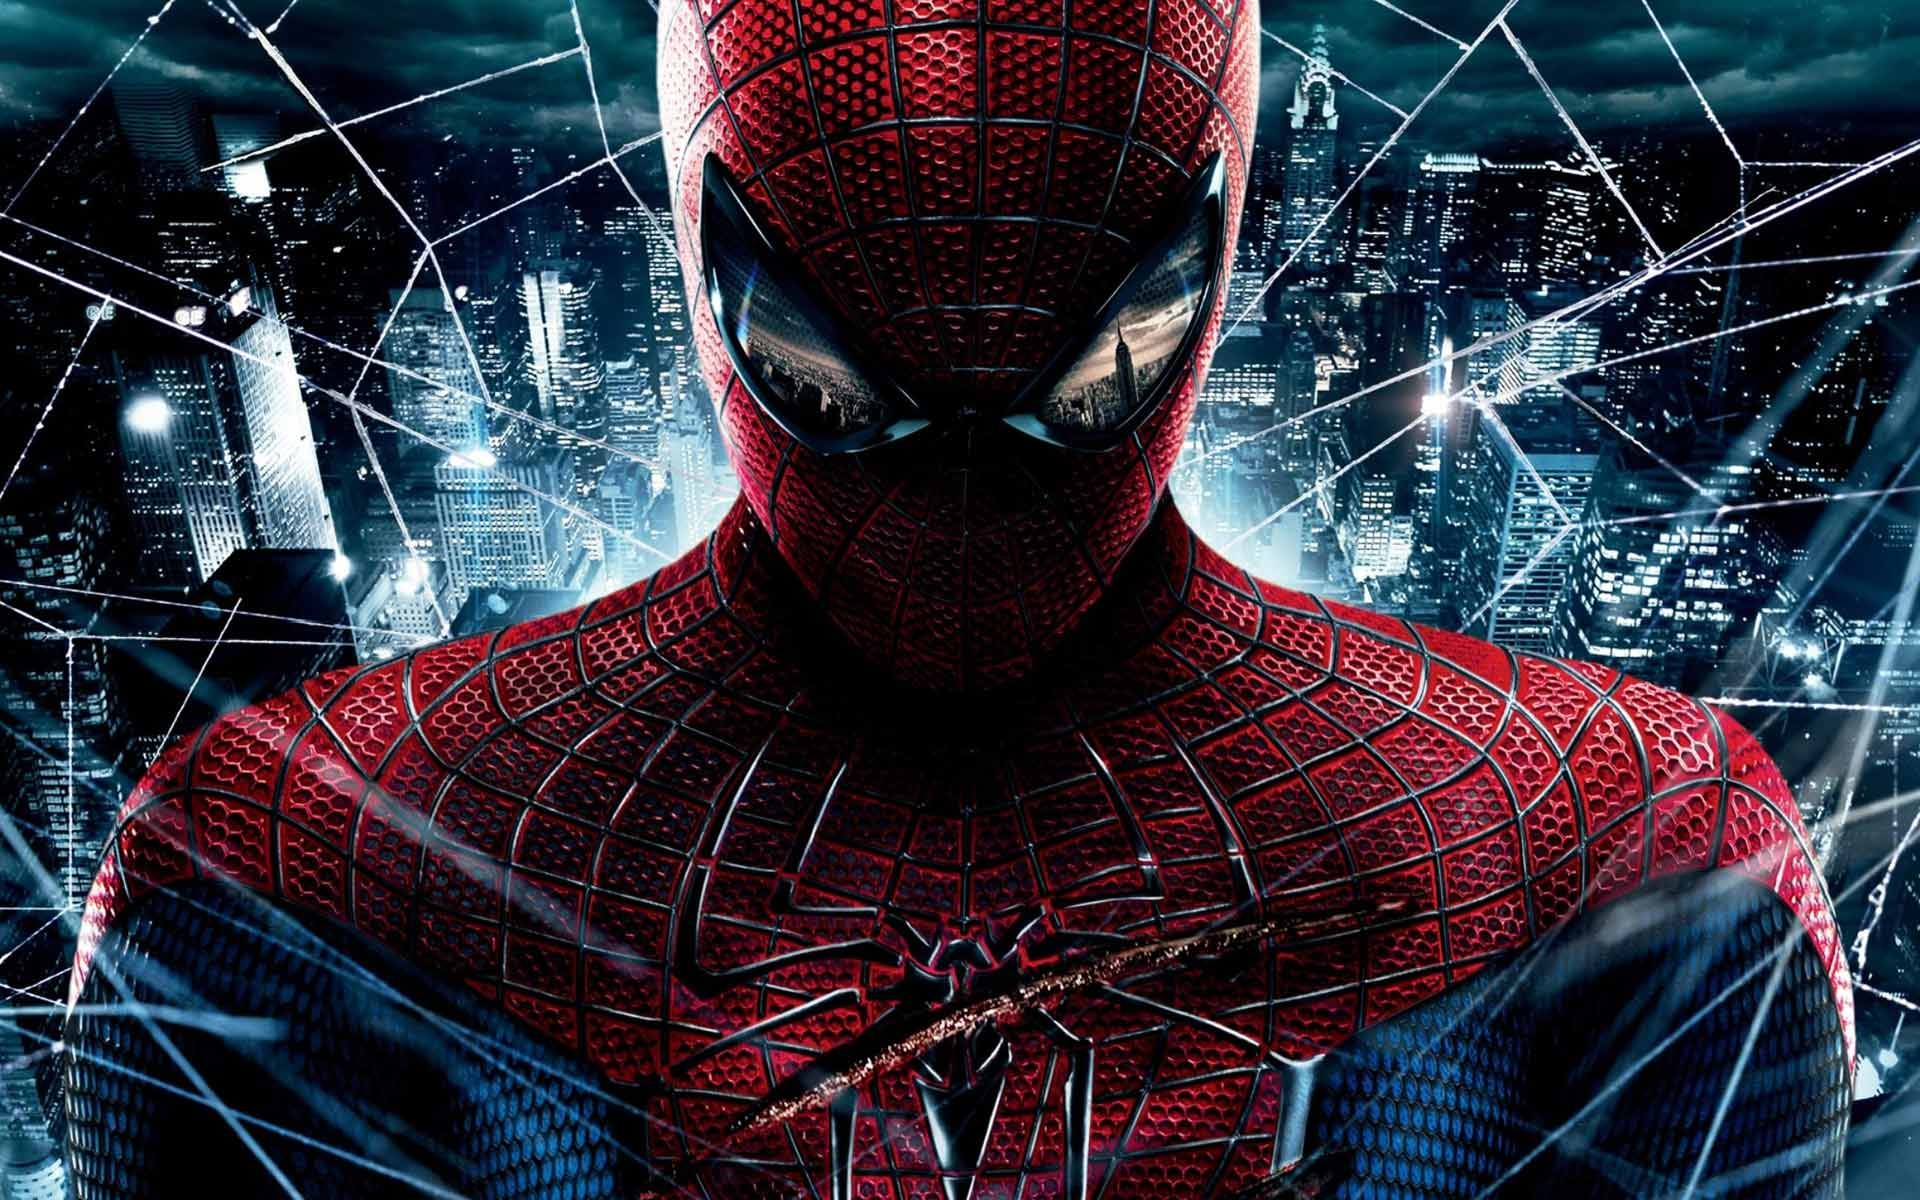 Spider Man Image Download: 4K Spiderman Wallpaper (55+ Images